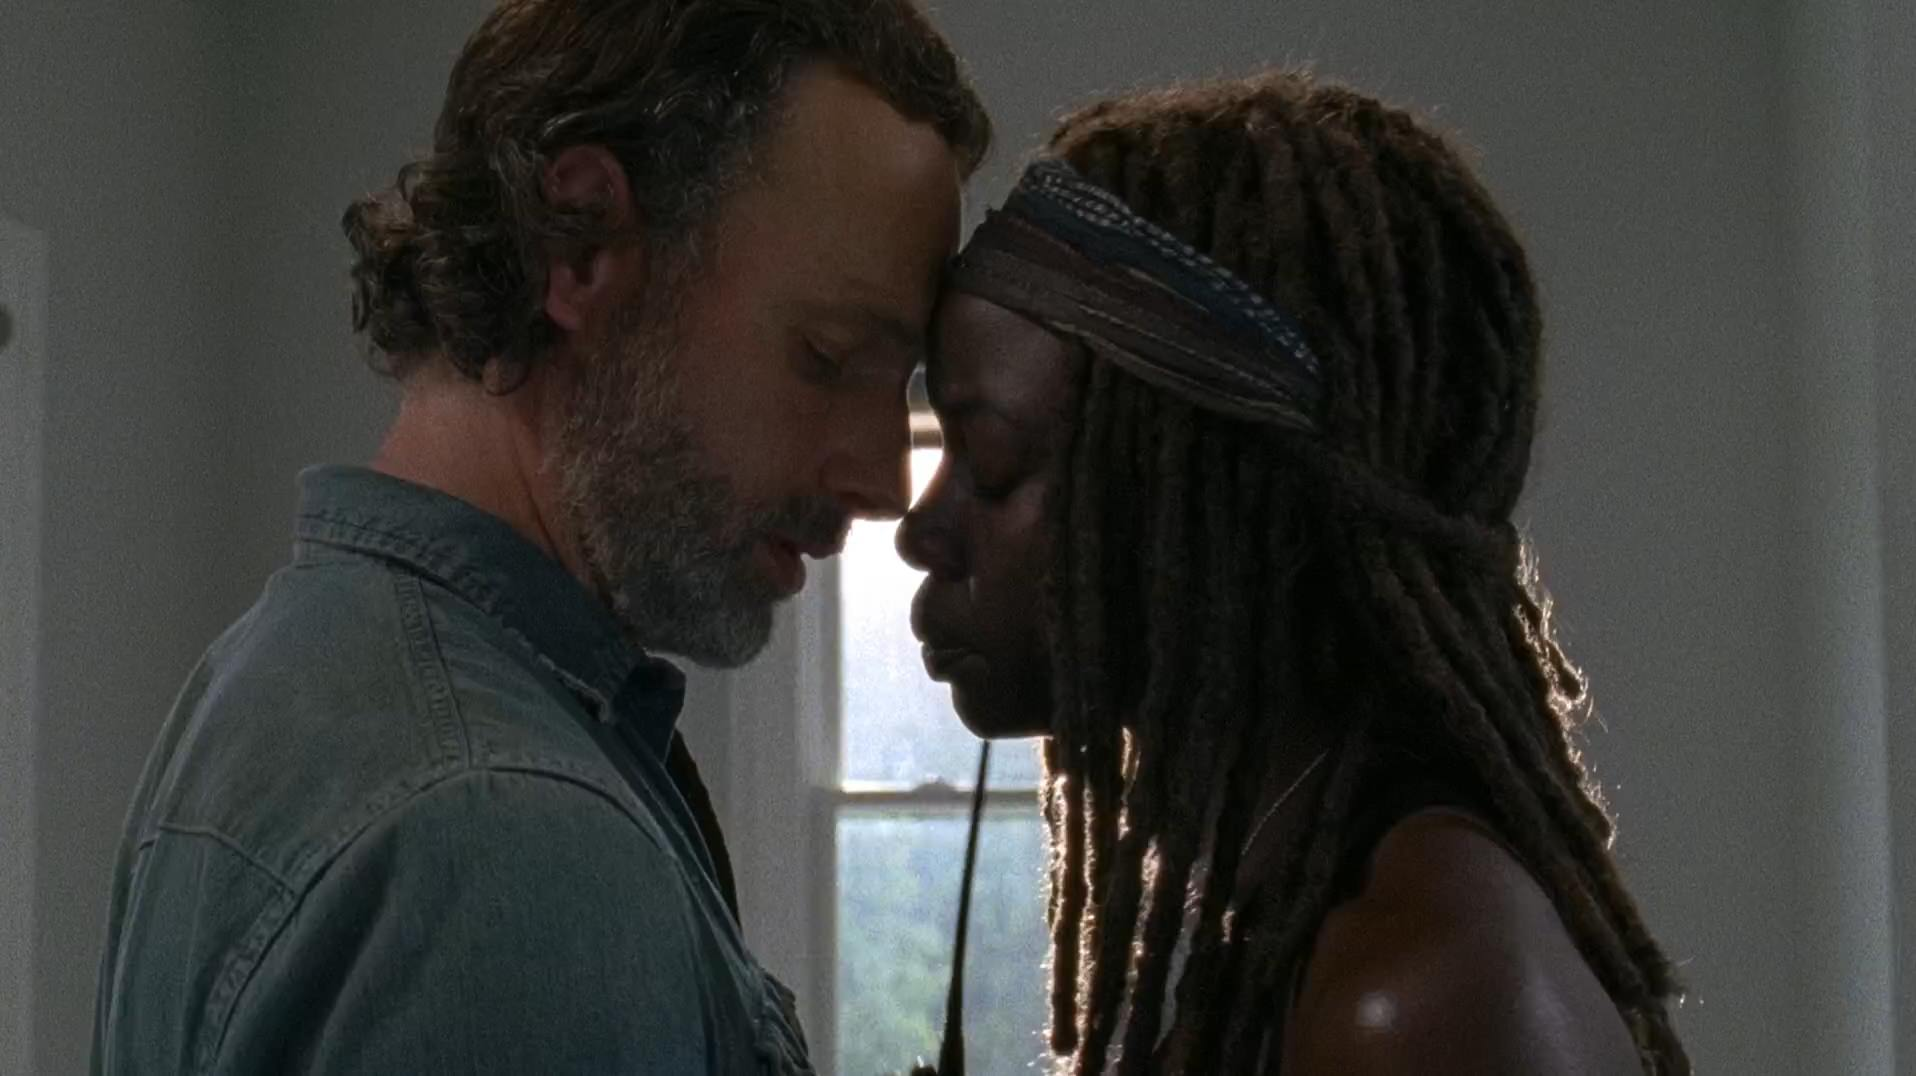 Danai Gurira on what's next for Rick and Michonne on The Walking Dead